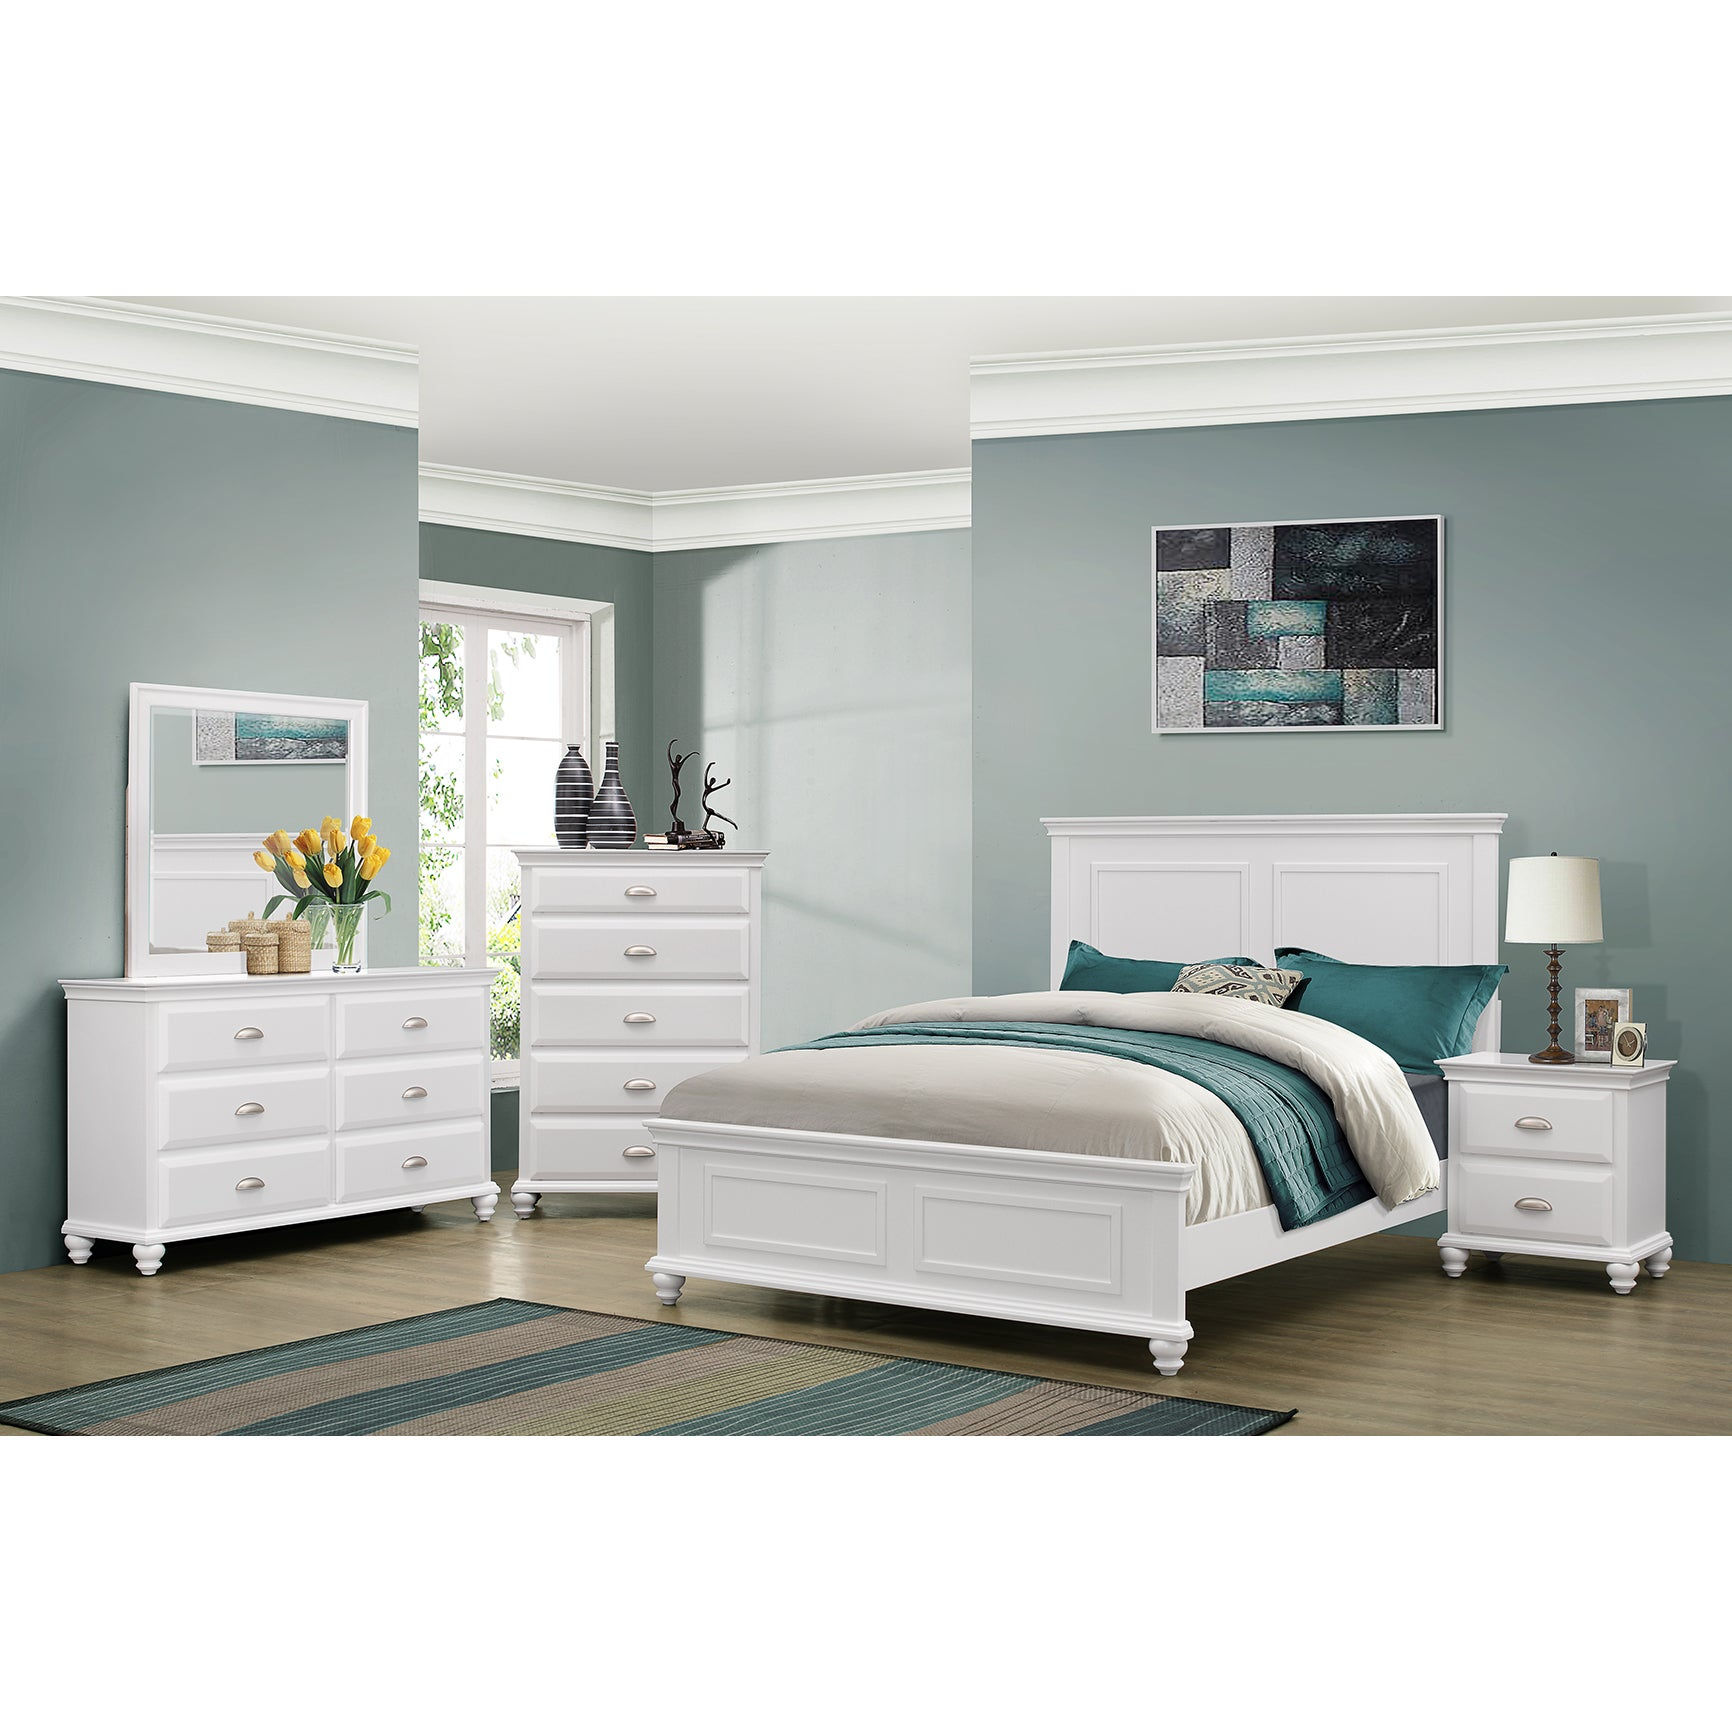 Simmons Casegoods Cape Cod Collection 3 Piece Queen/ King Bedroom Set